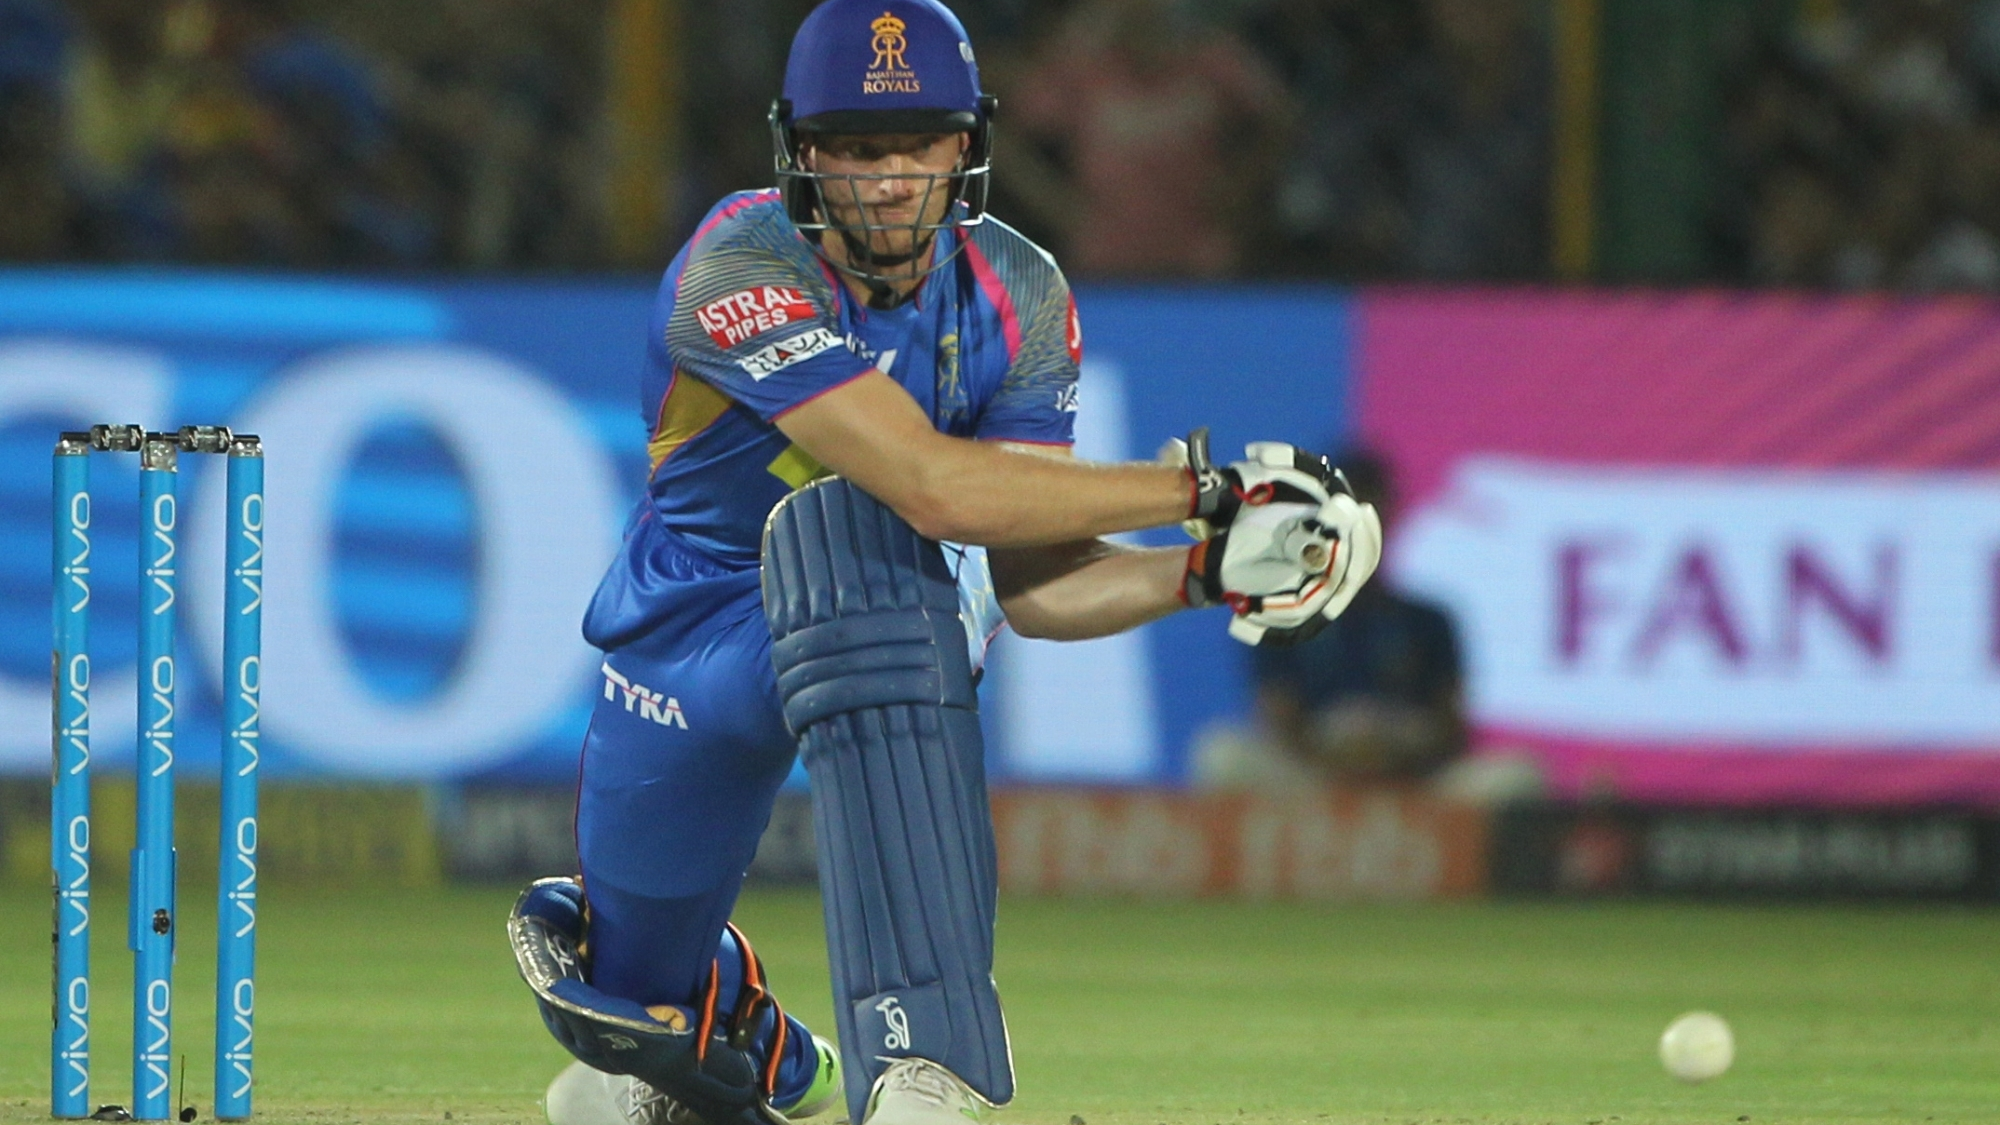 IPL 2018: Acceptance of IPL is a key factor behind England's white-ball resurgence, reckons Jos Buttler